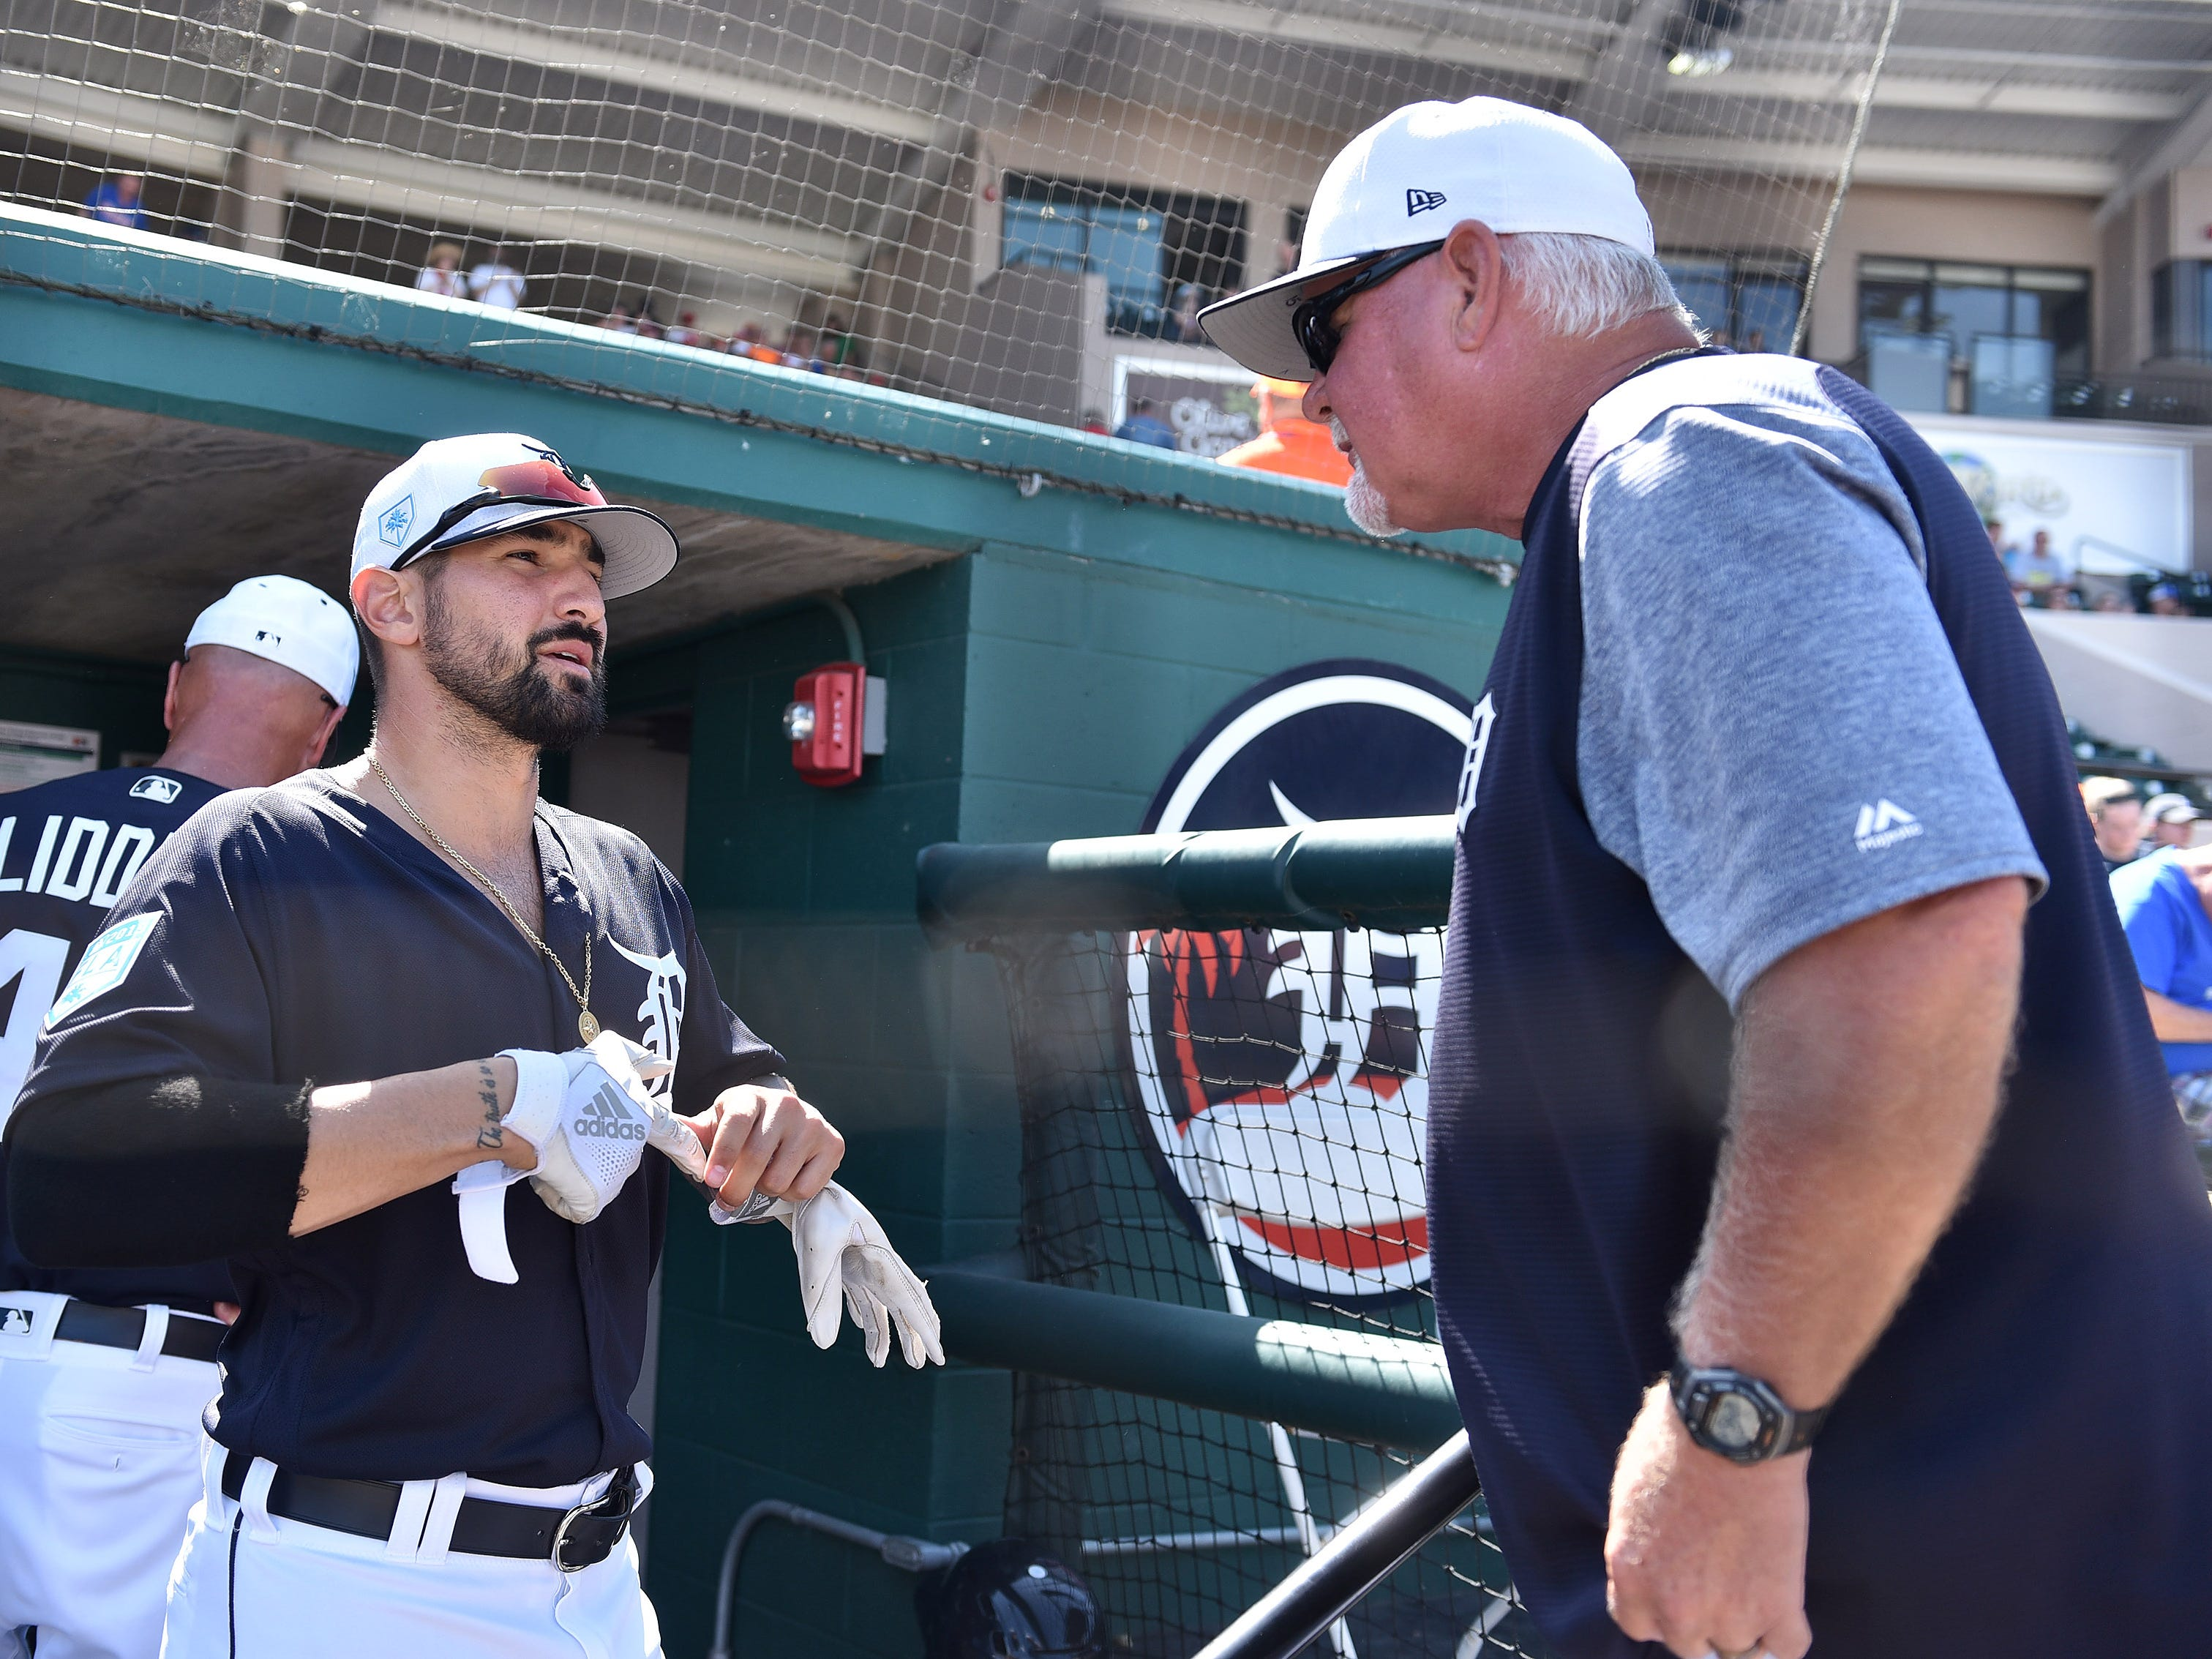 Tigers' Nicholas Castellanos talk with manager Ron Gardenhire, right, at the start of the game.